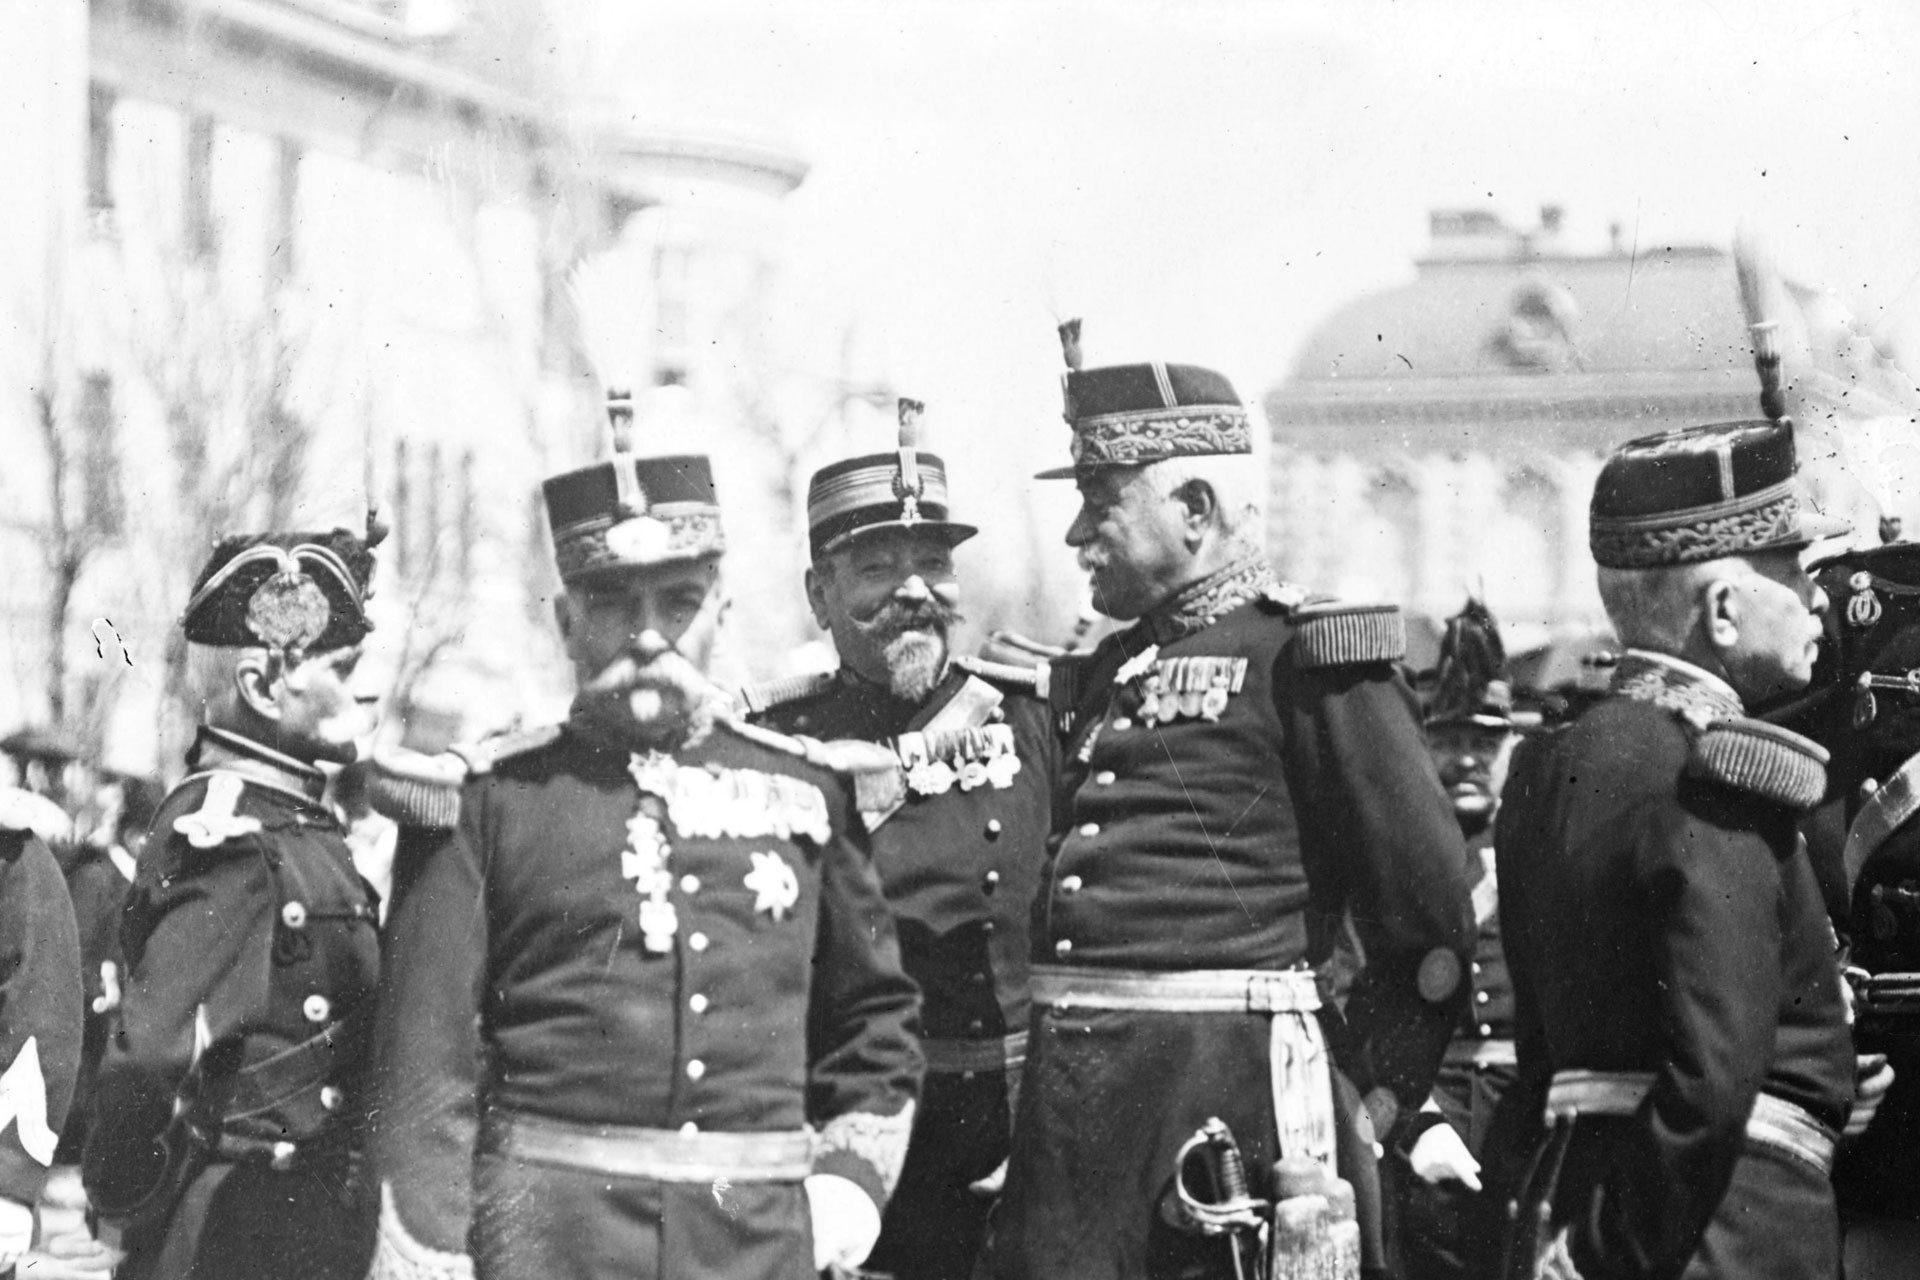 A group of Word War 1 officers